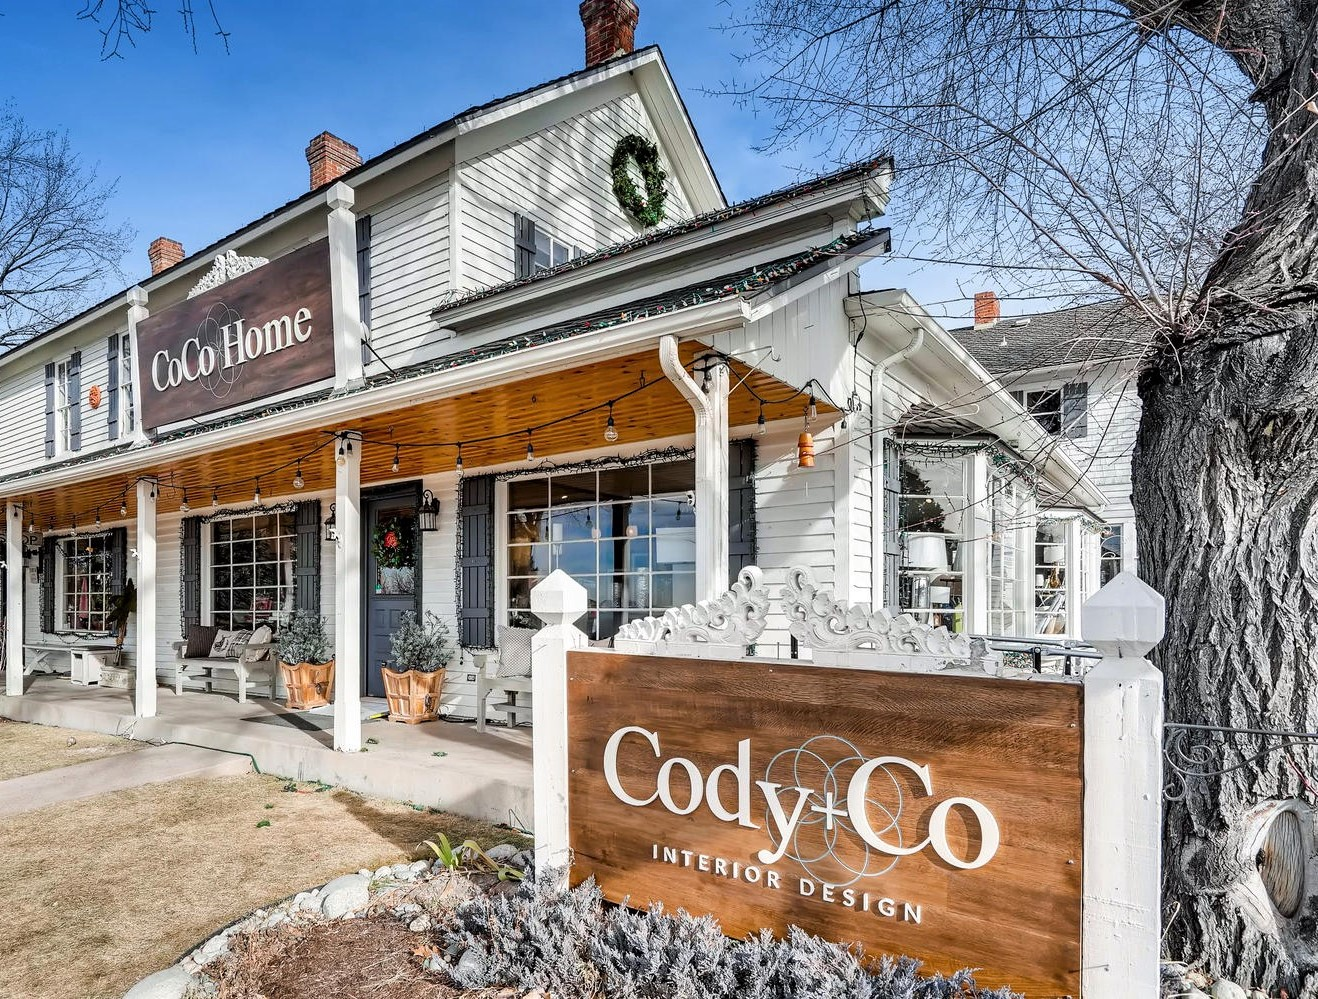 Cody & Co Interior Design